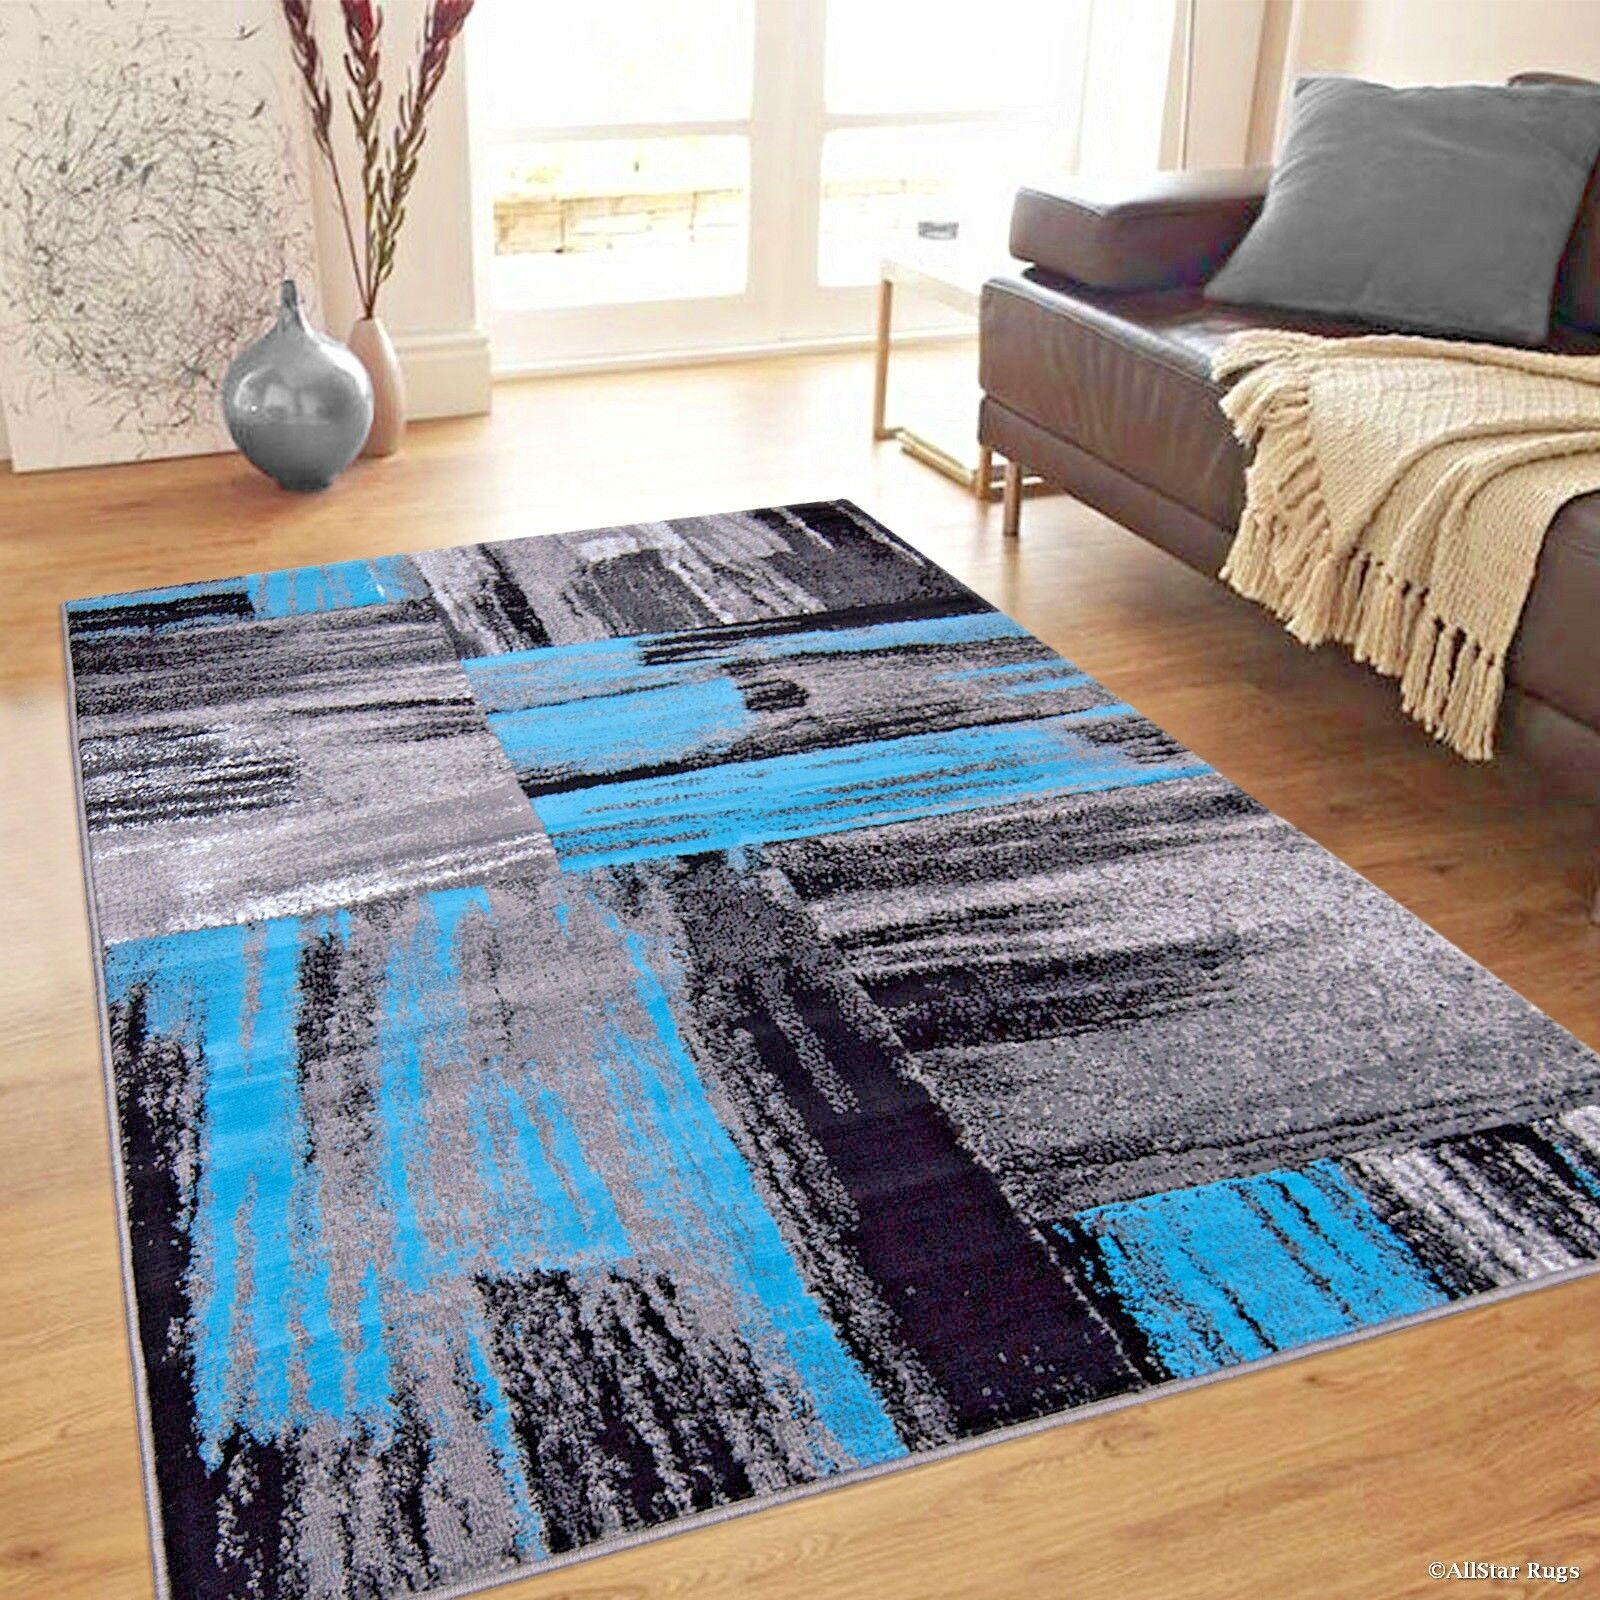 Details About Rugs Area Rugs Carpets 8x10 Rug Modern Large Floor Room Blue Big Gray Cool Rugs